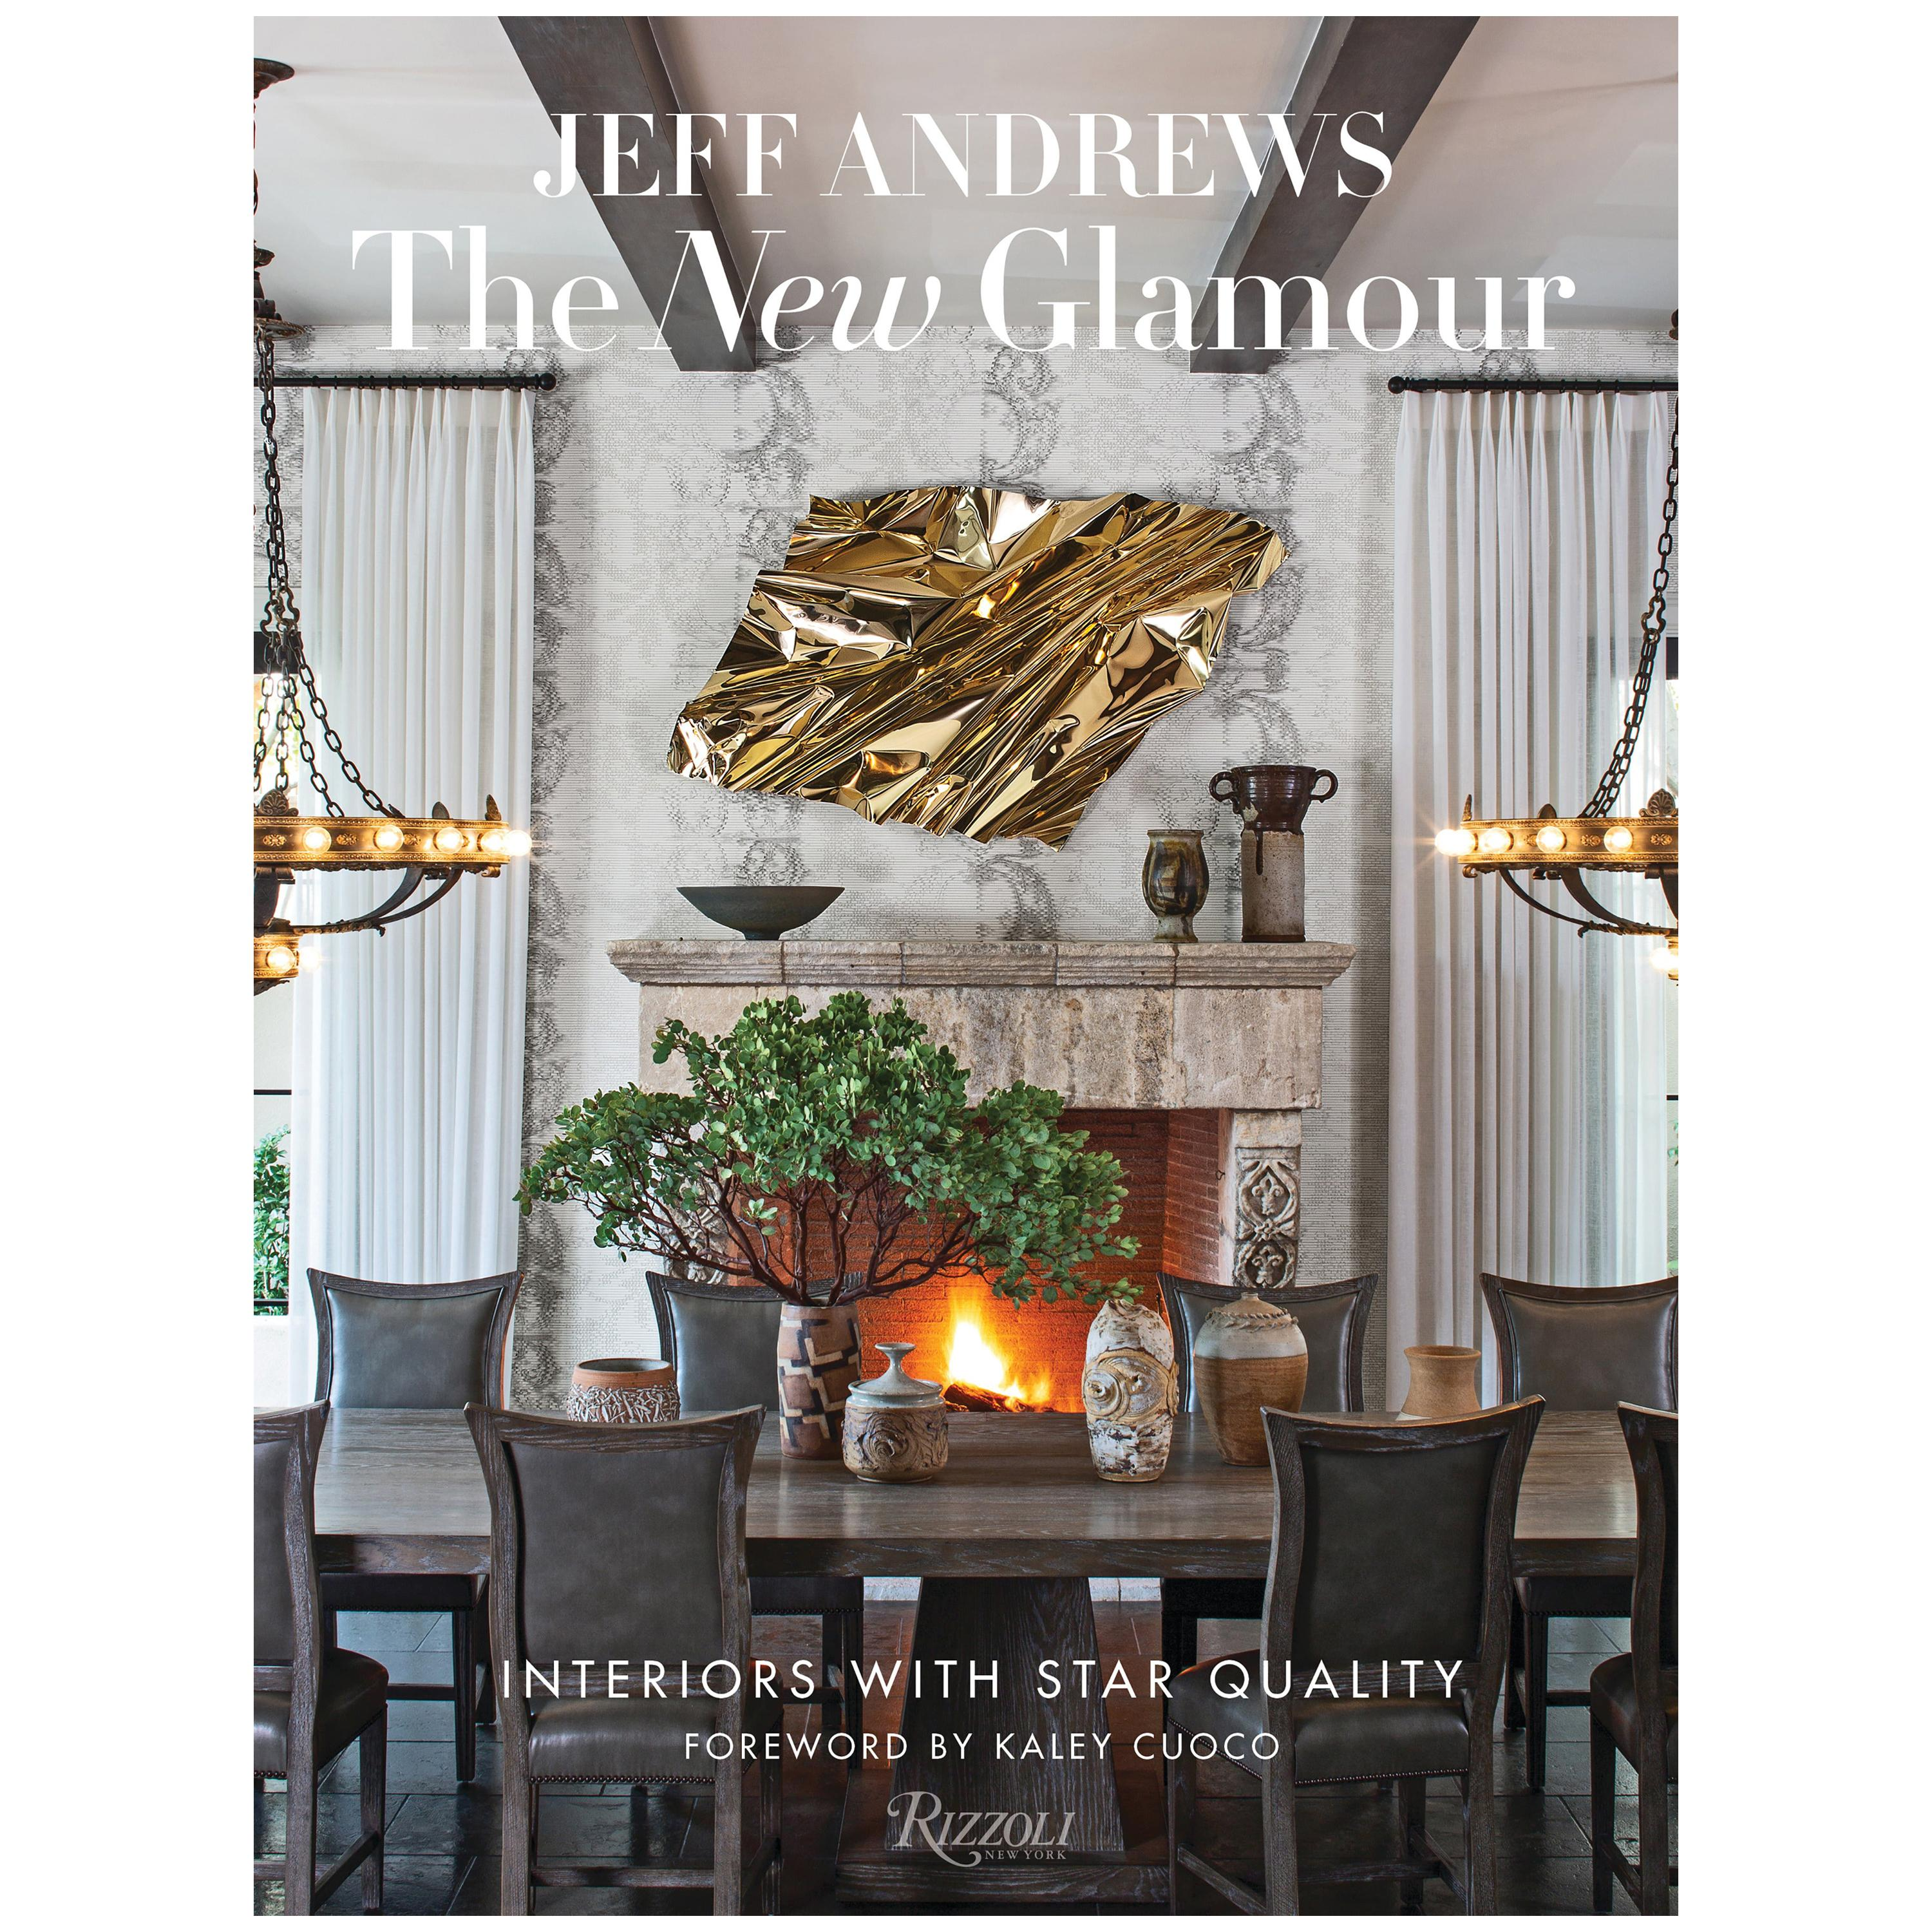 The New Glamour Interiors with Star Quality